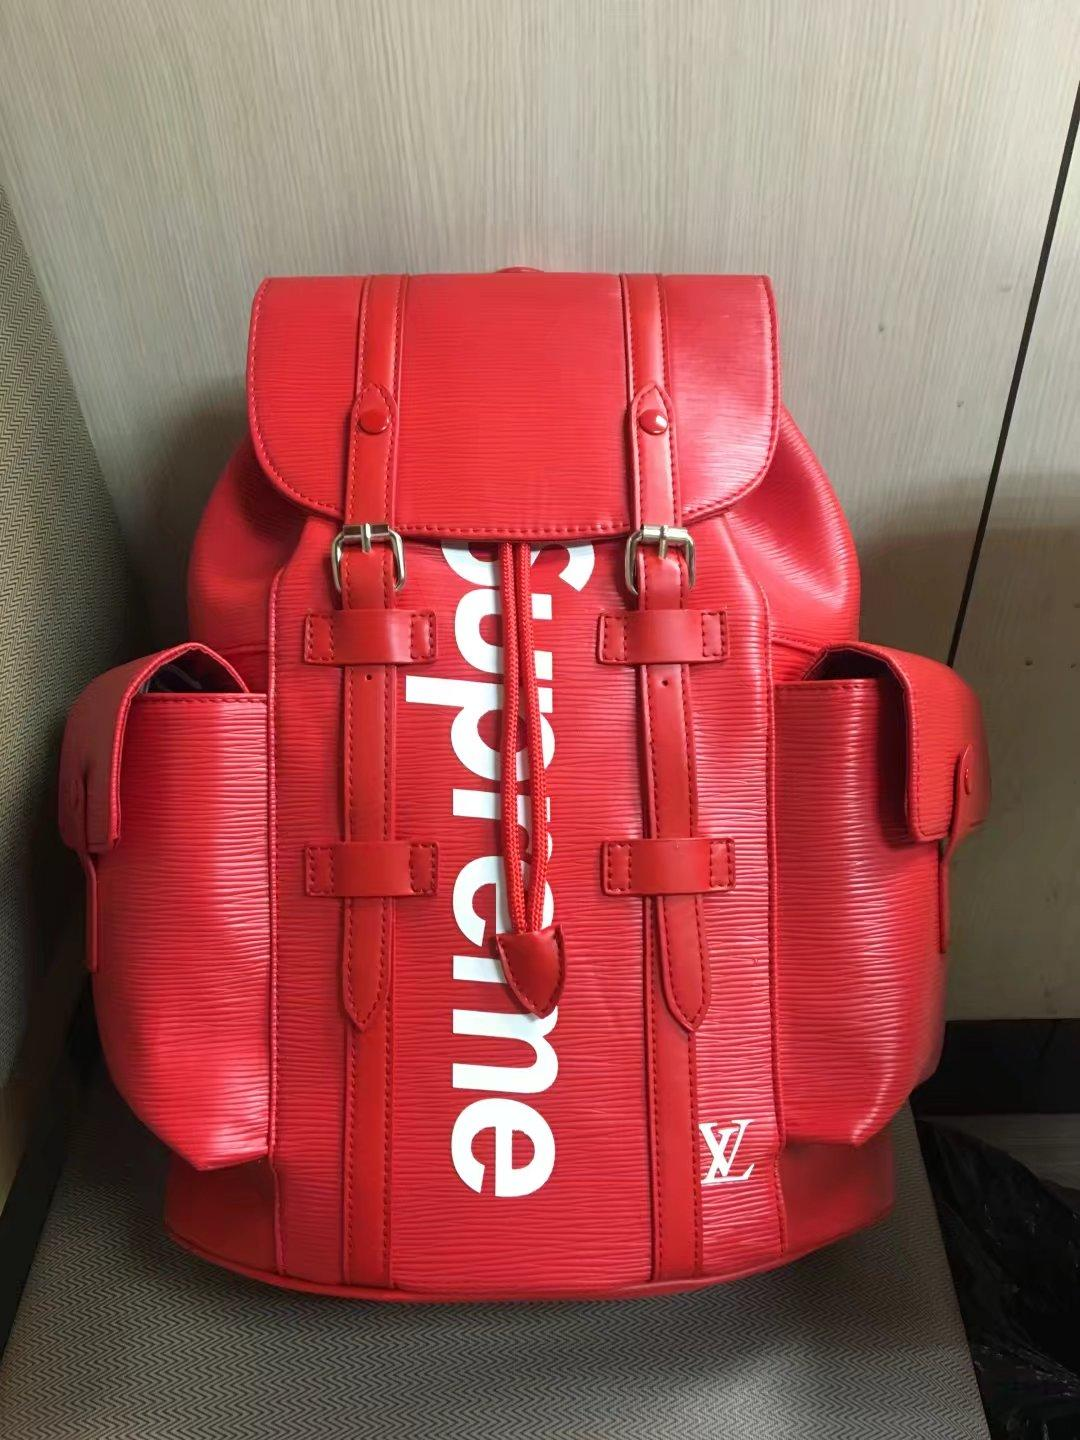 2019 Louis Vuitton X Supreme Women Red Leather Travel Bags Men Backpack Shoulder Messenger Michael 8 Kor Totes Purse Gg Clutch Lv From Lvbag8866